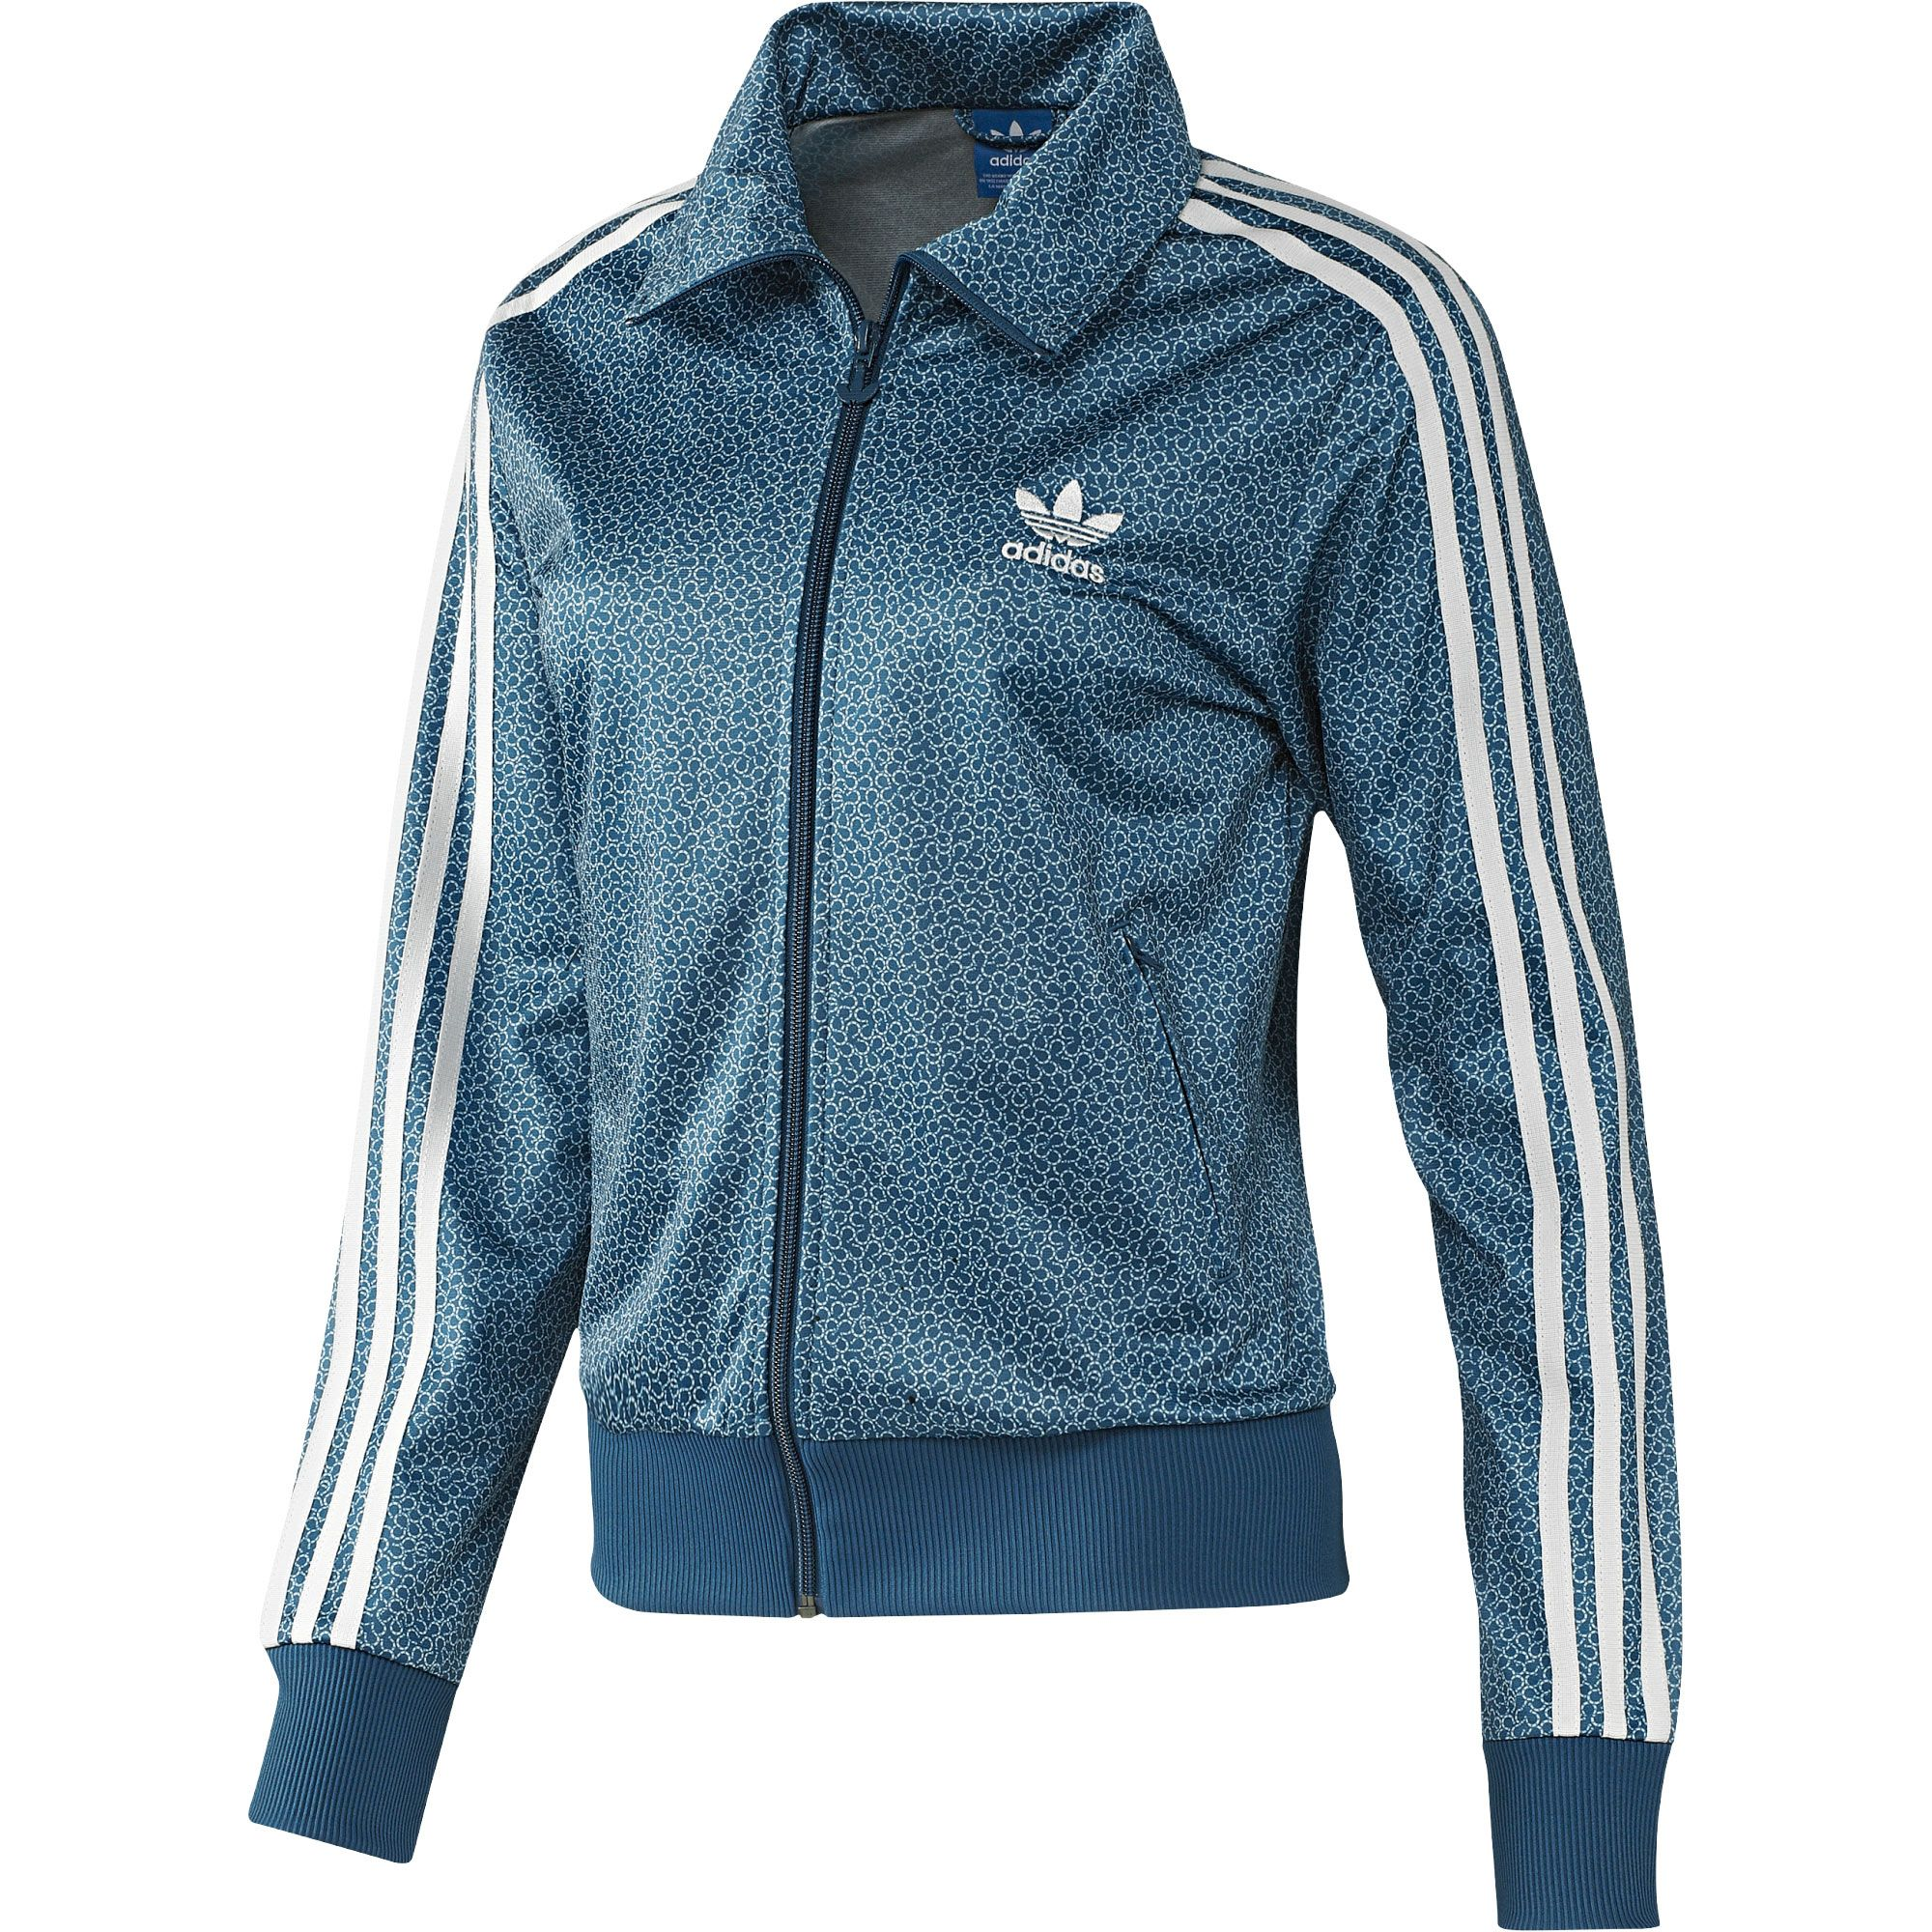 Adidas firebird jacket womens uk